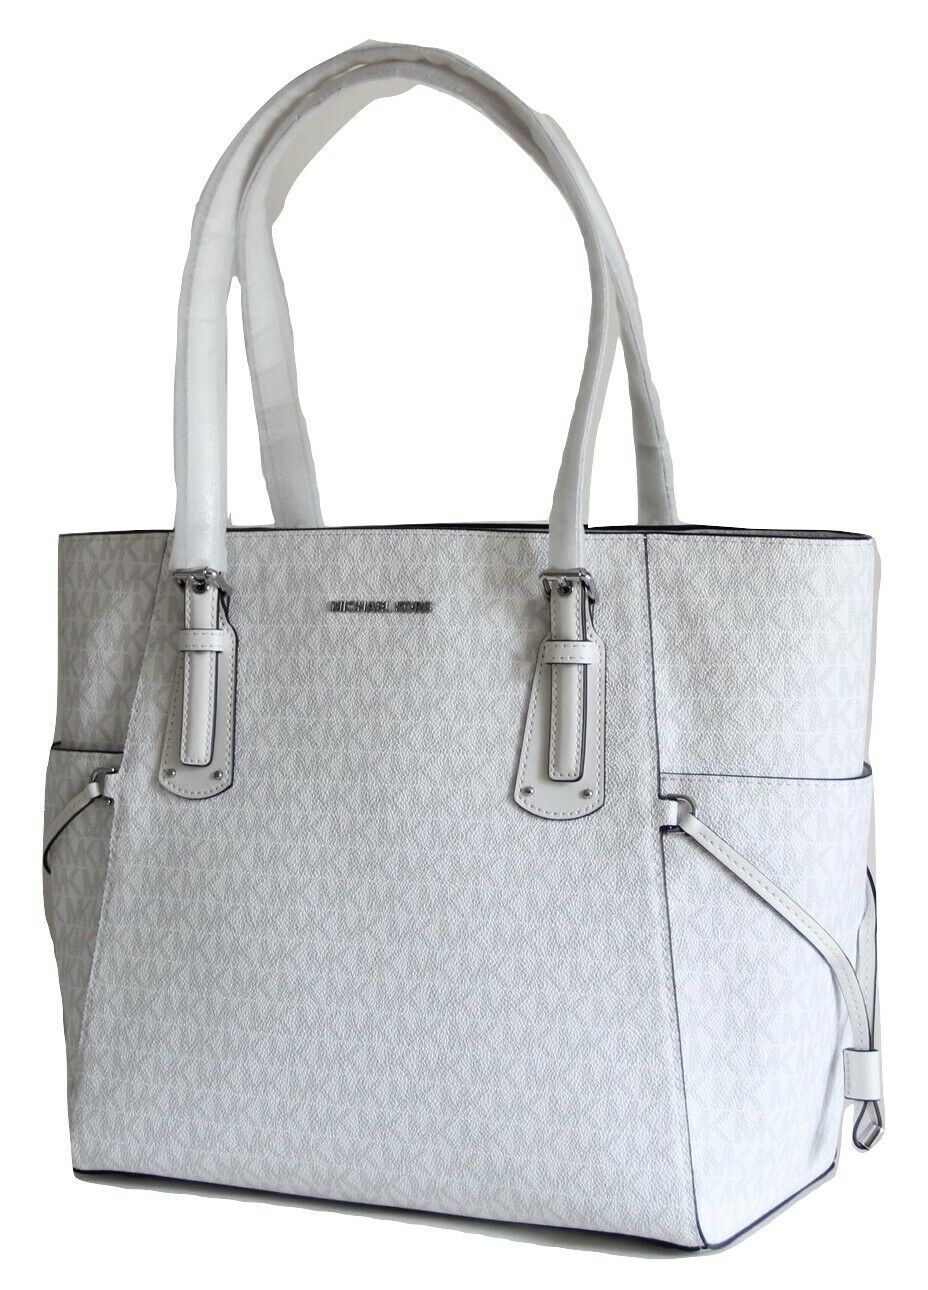 NWT MICHAEL KORS VOYAGER SIGNATURE EAST WEST TOTE BRIGHT WHITE image 4